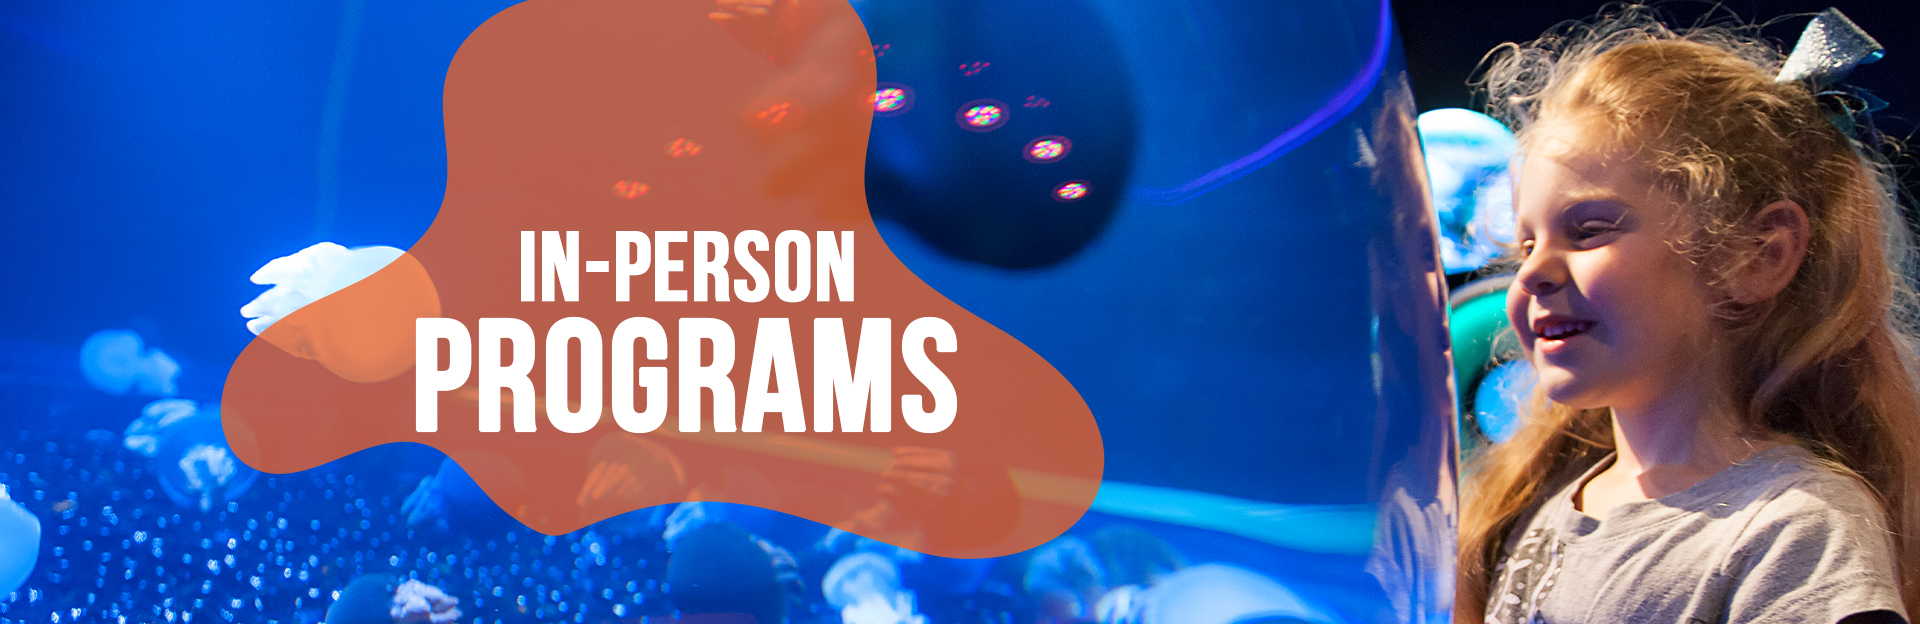 Header Image for Programs and Field Trips Page